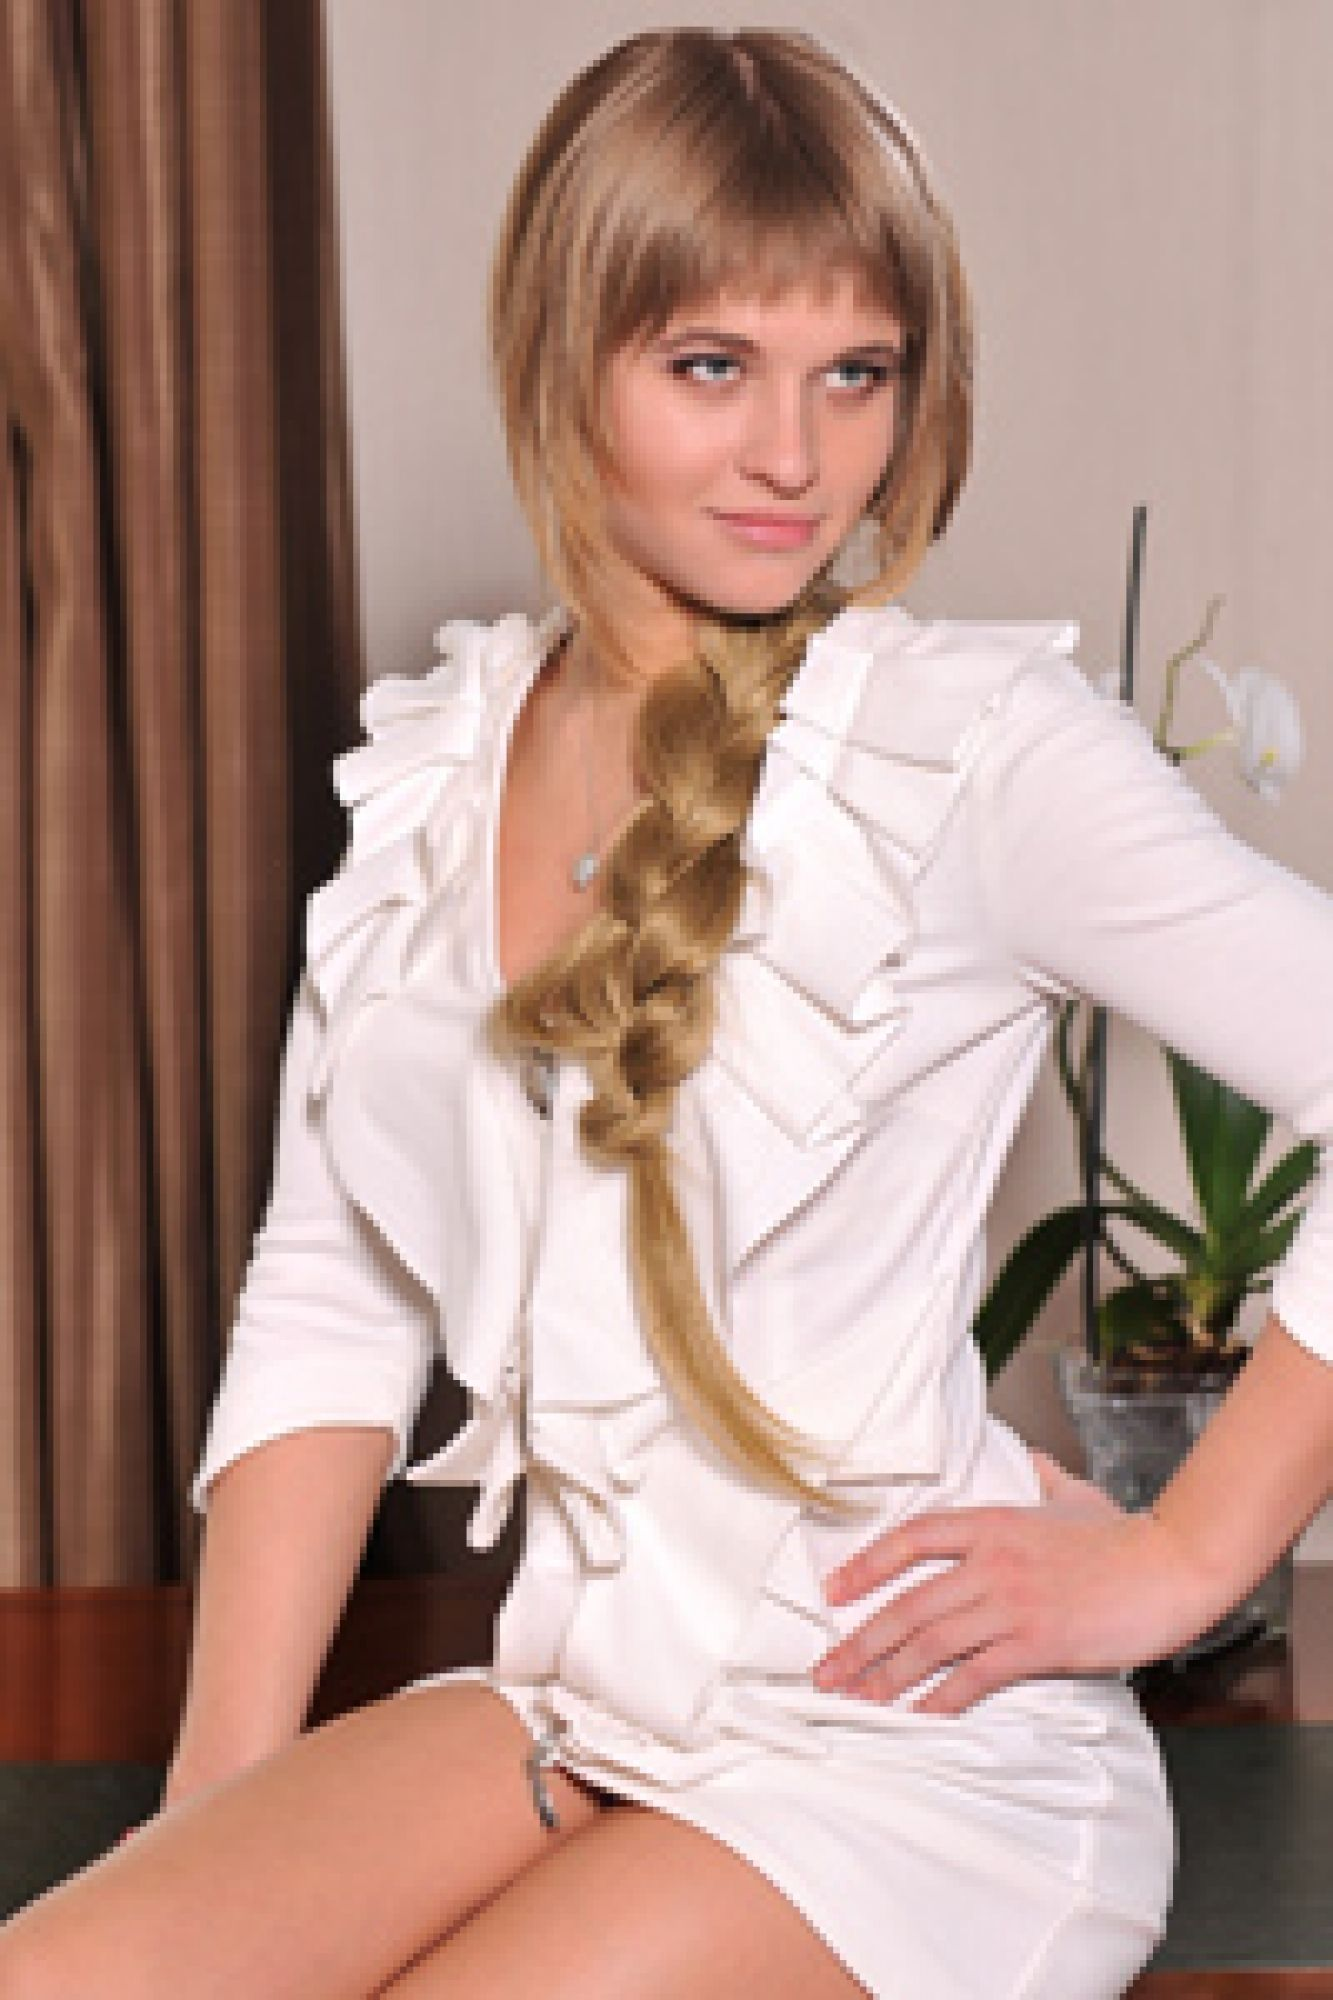 Mature dating ukraine single